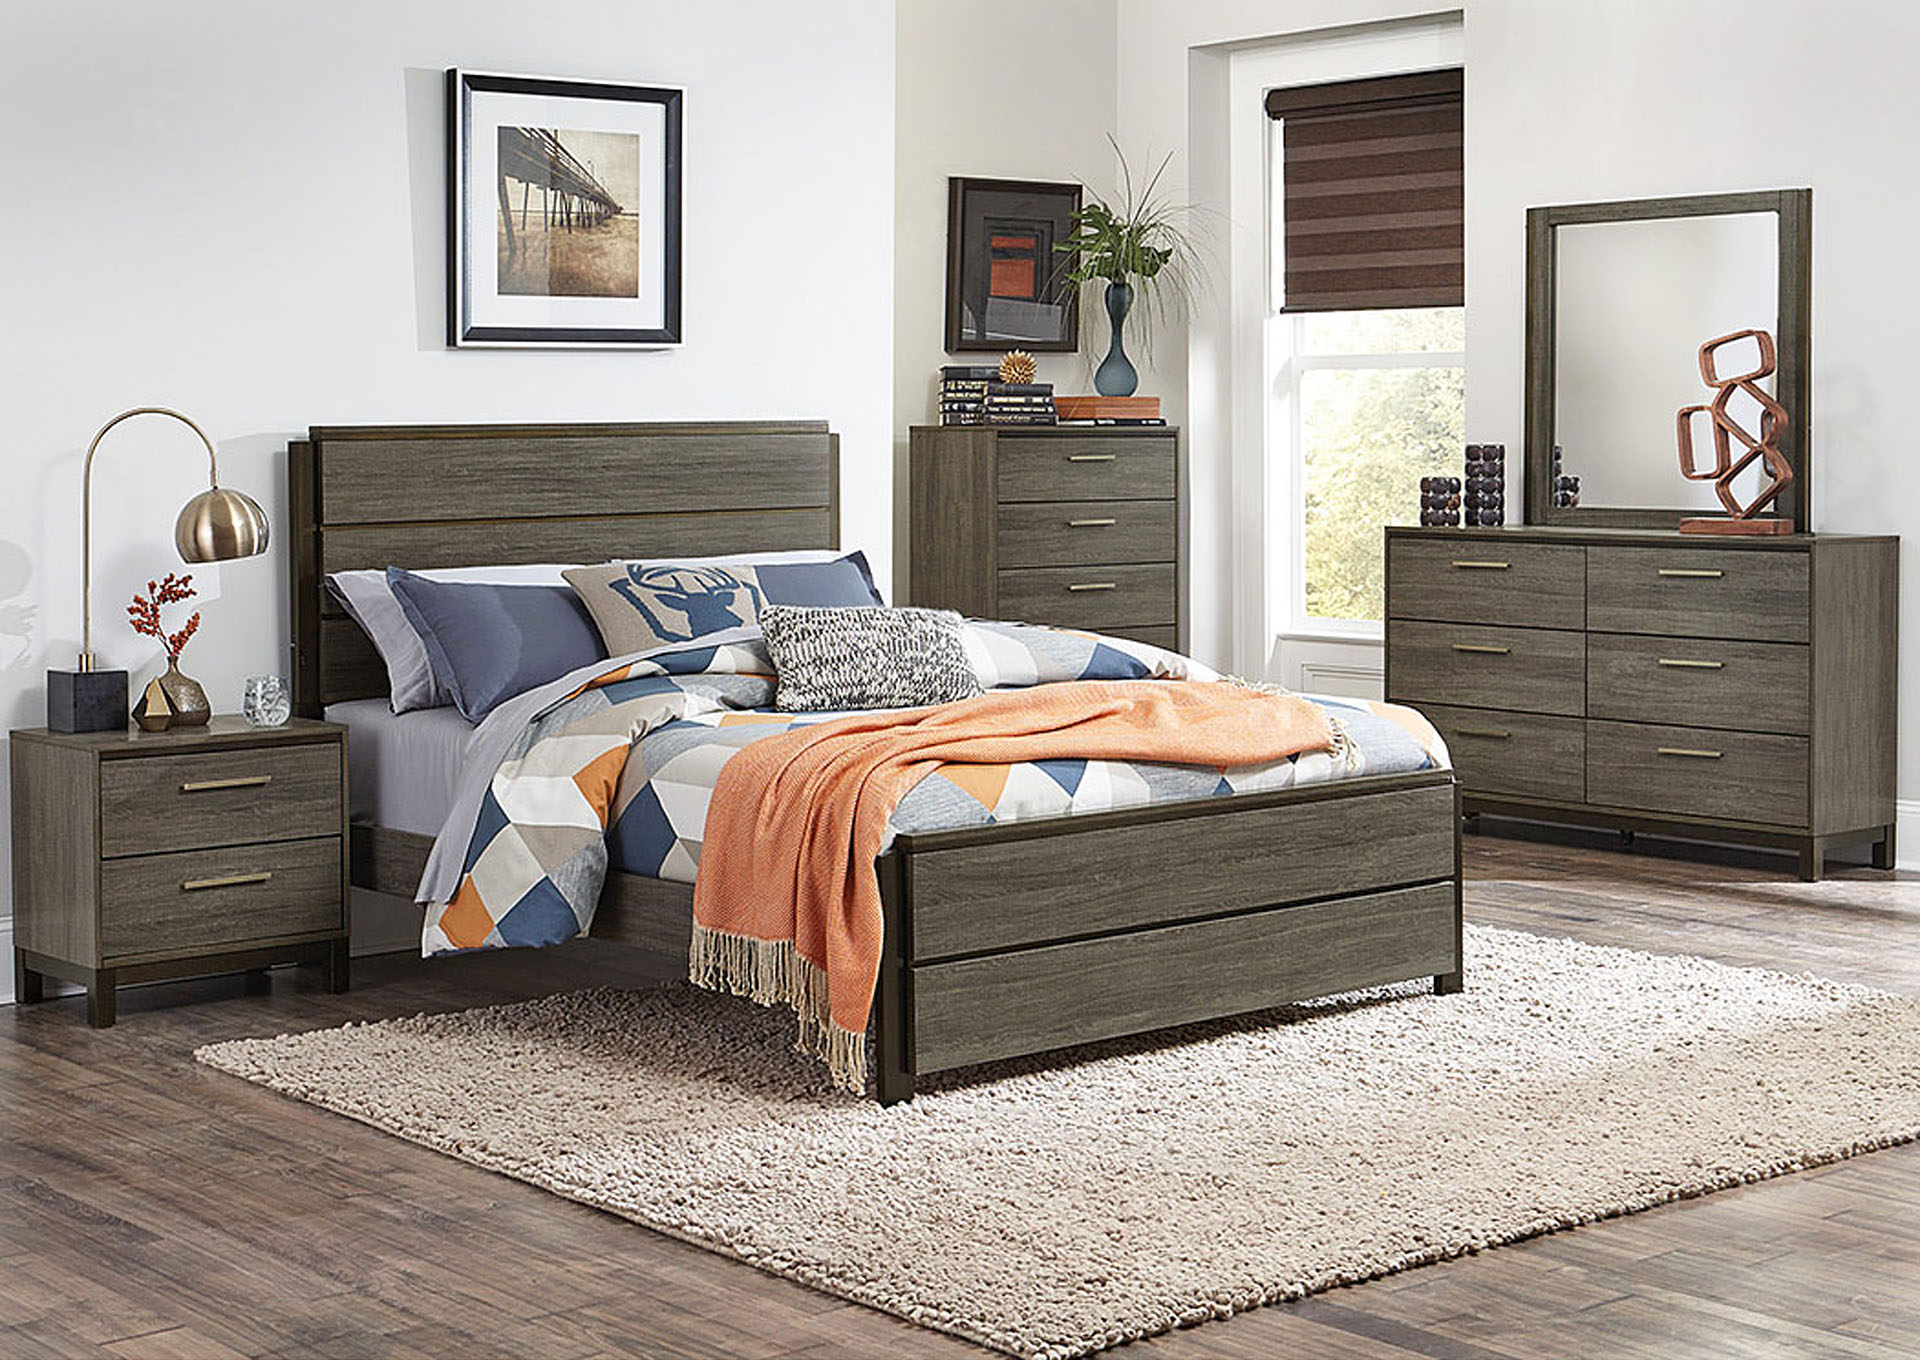 Queen Bed,Homelegance